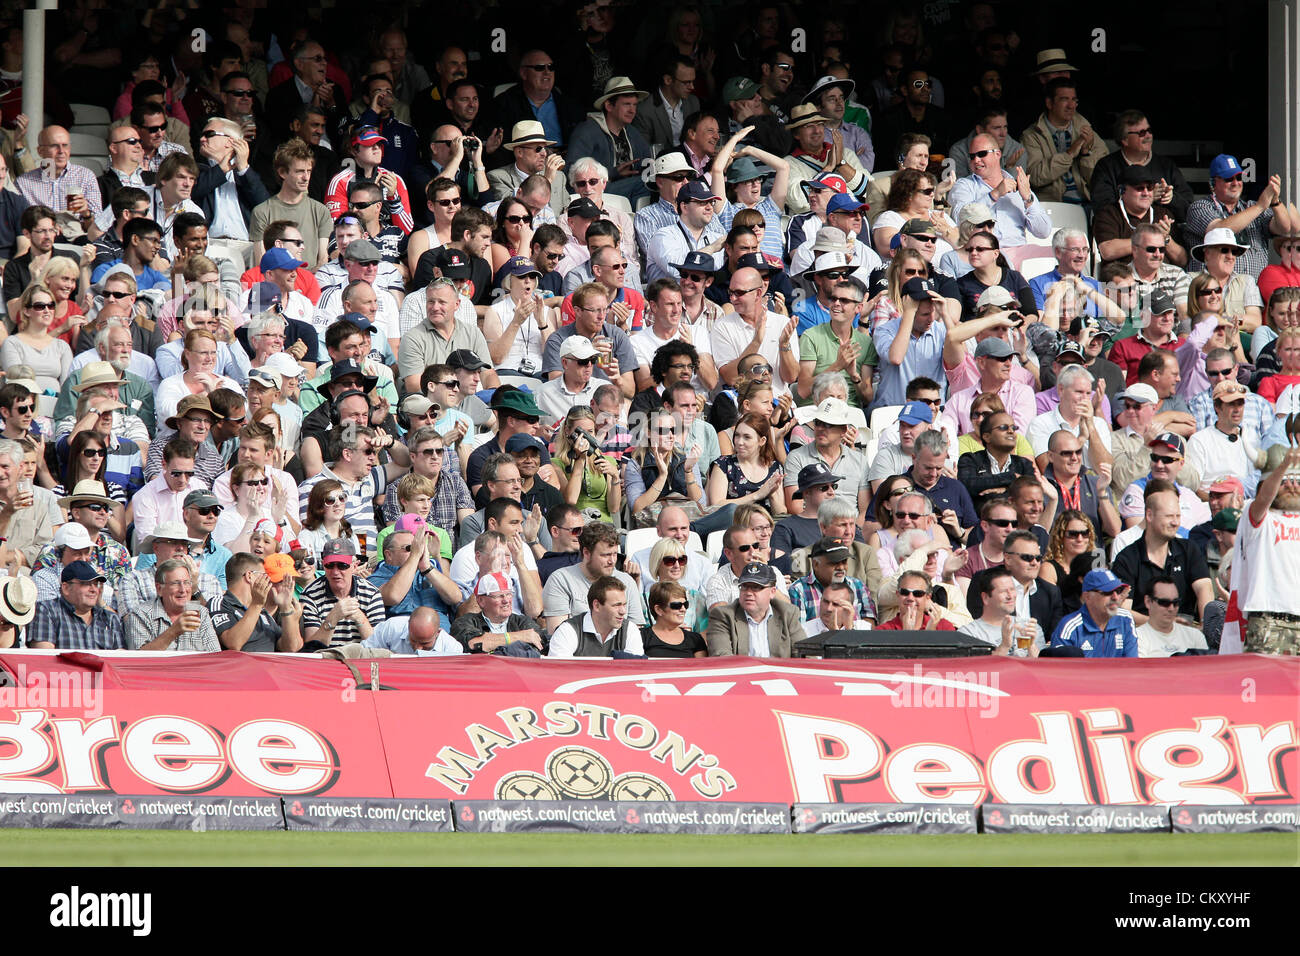 31-08-2012 London England The crowd applaud Jimmy Andersons wicket during the England v South Africa: 3rd Natwest - Stock Image